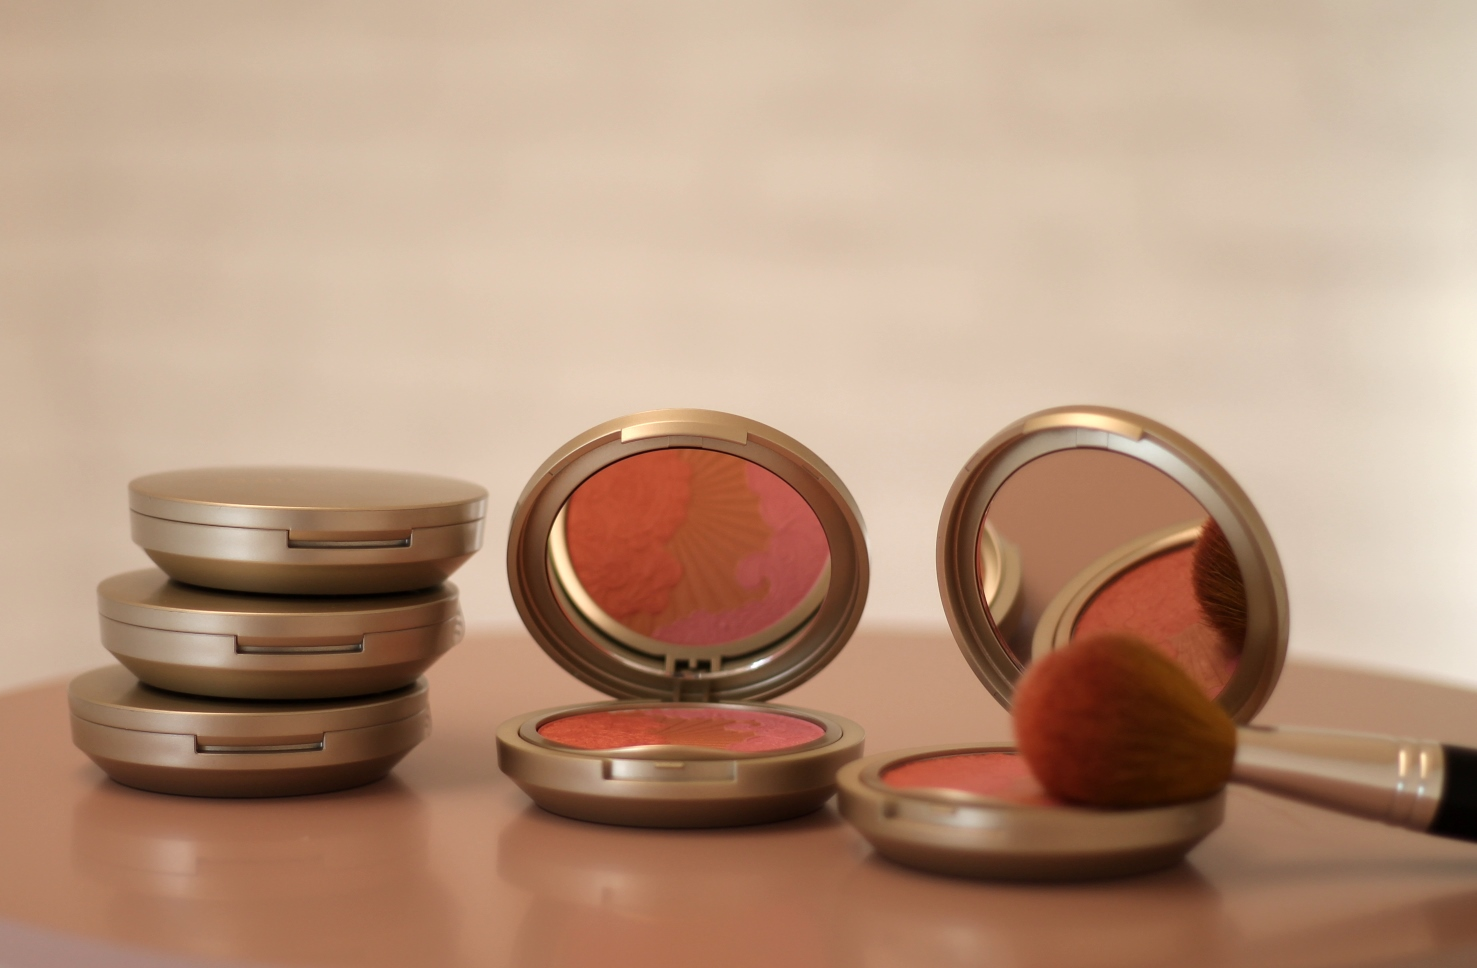 Wangenpuder, Rouge, Blush